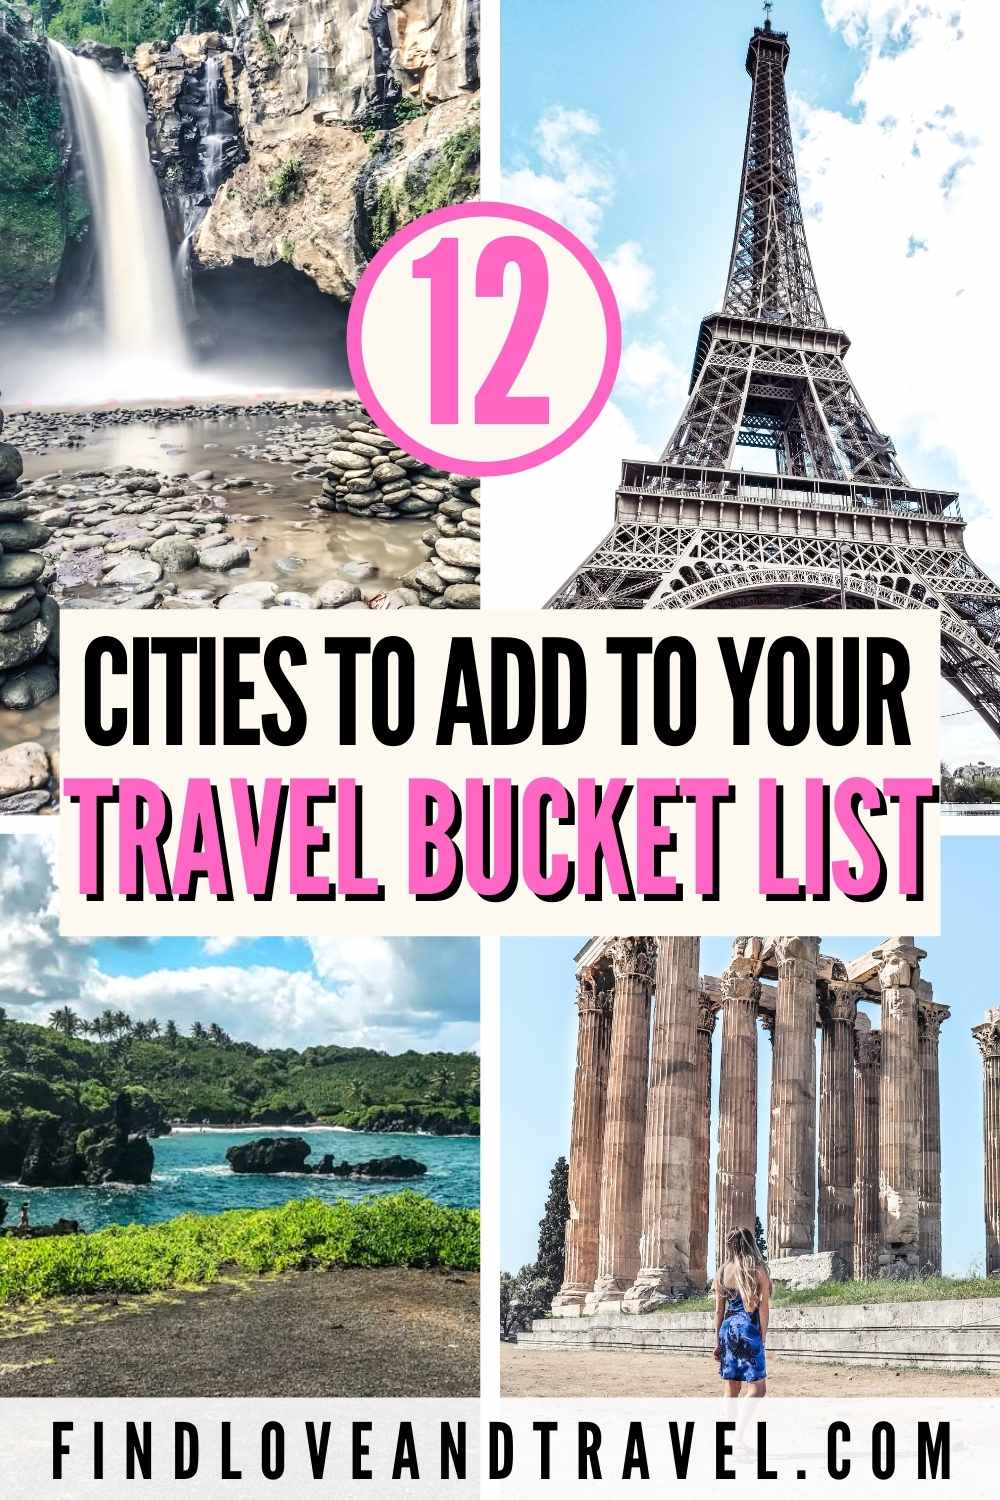 12 bucket list cities and destinations to travel to